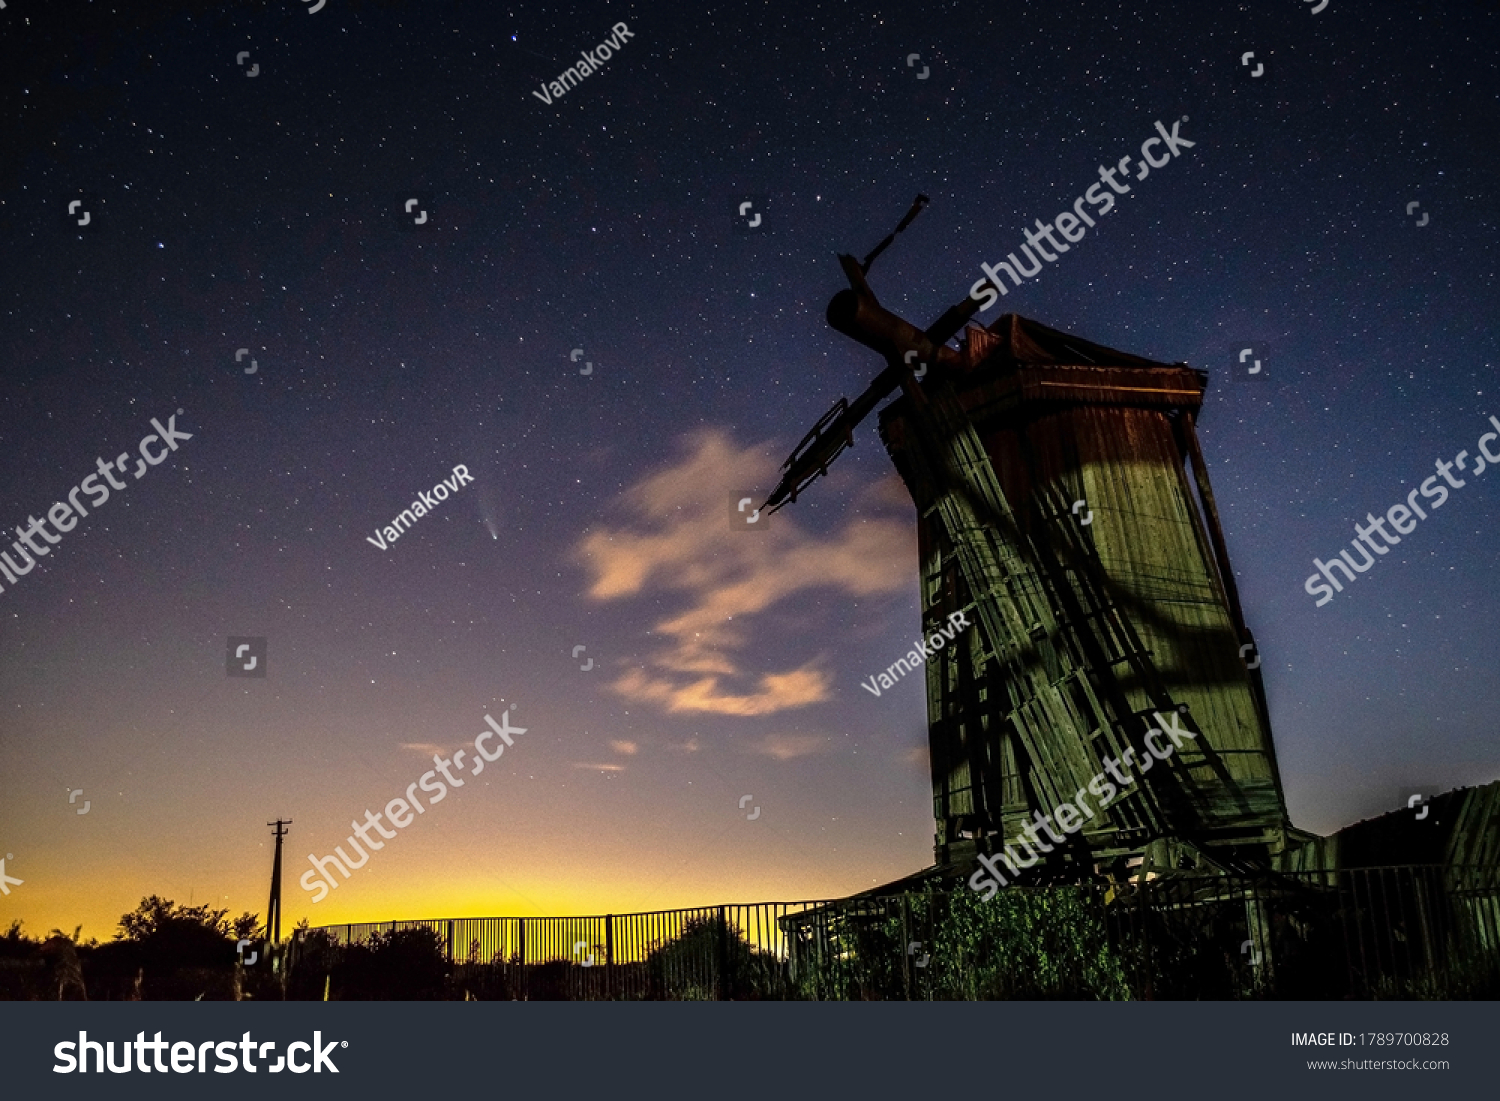 stock-photo-summer-clear-night-sky-with-